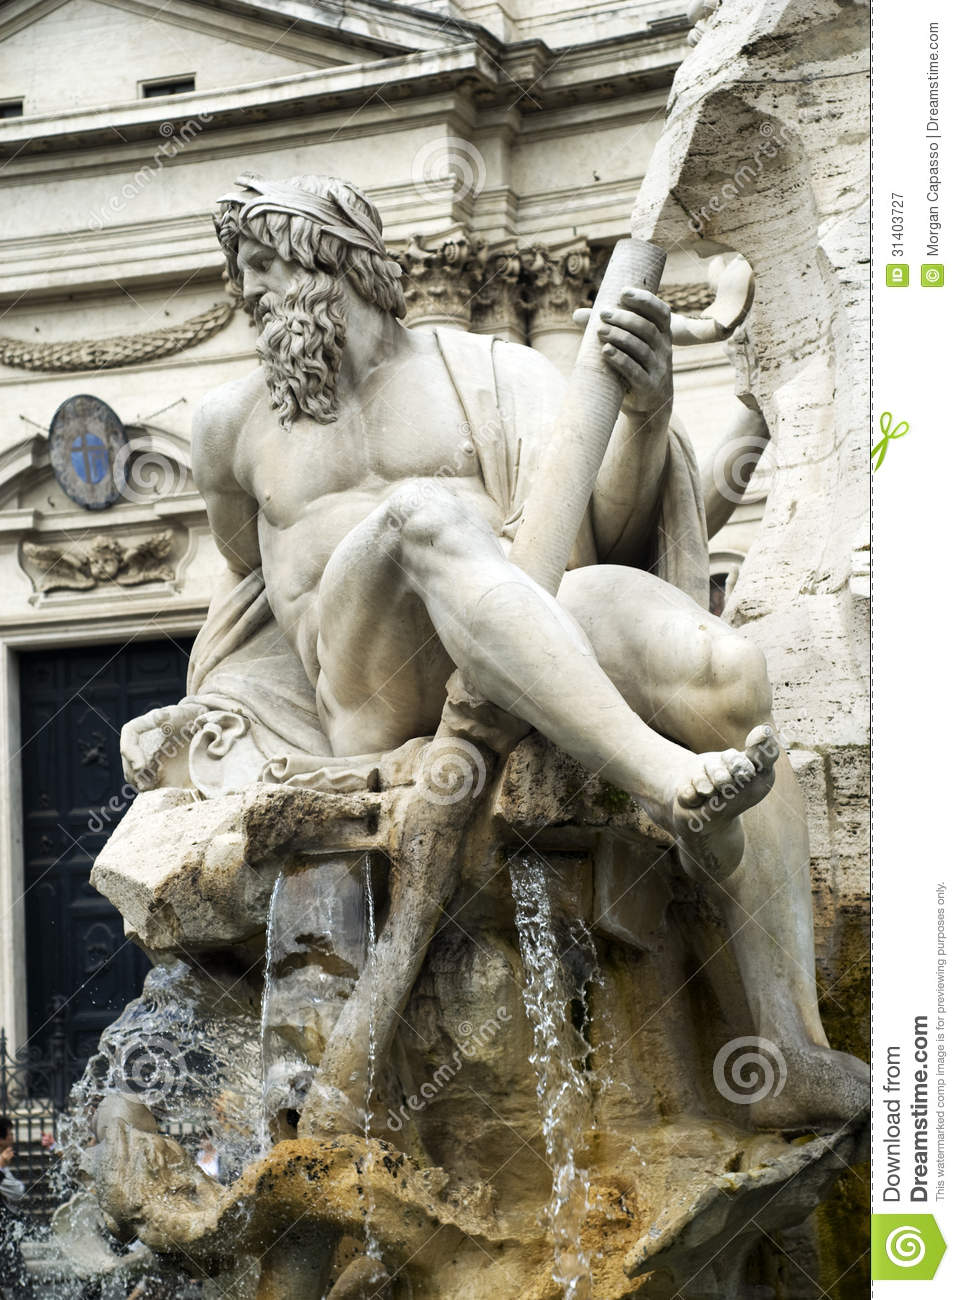 Sculpture In Piazza Navone Rome Italy Royalty Free Stock Photography Image 31403727